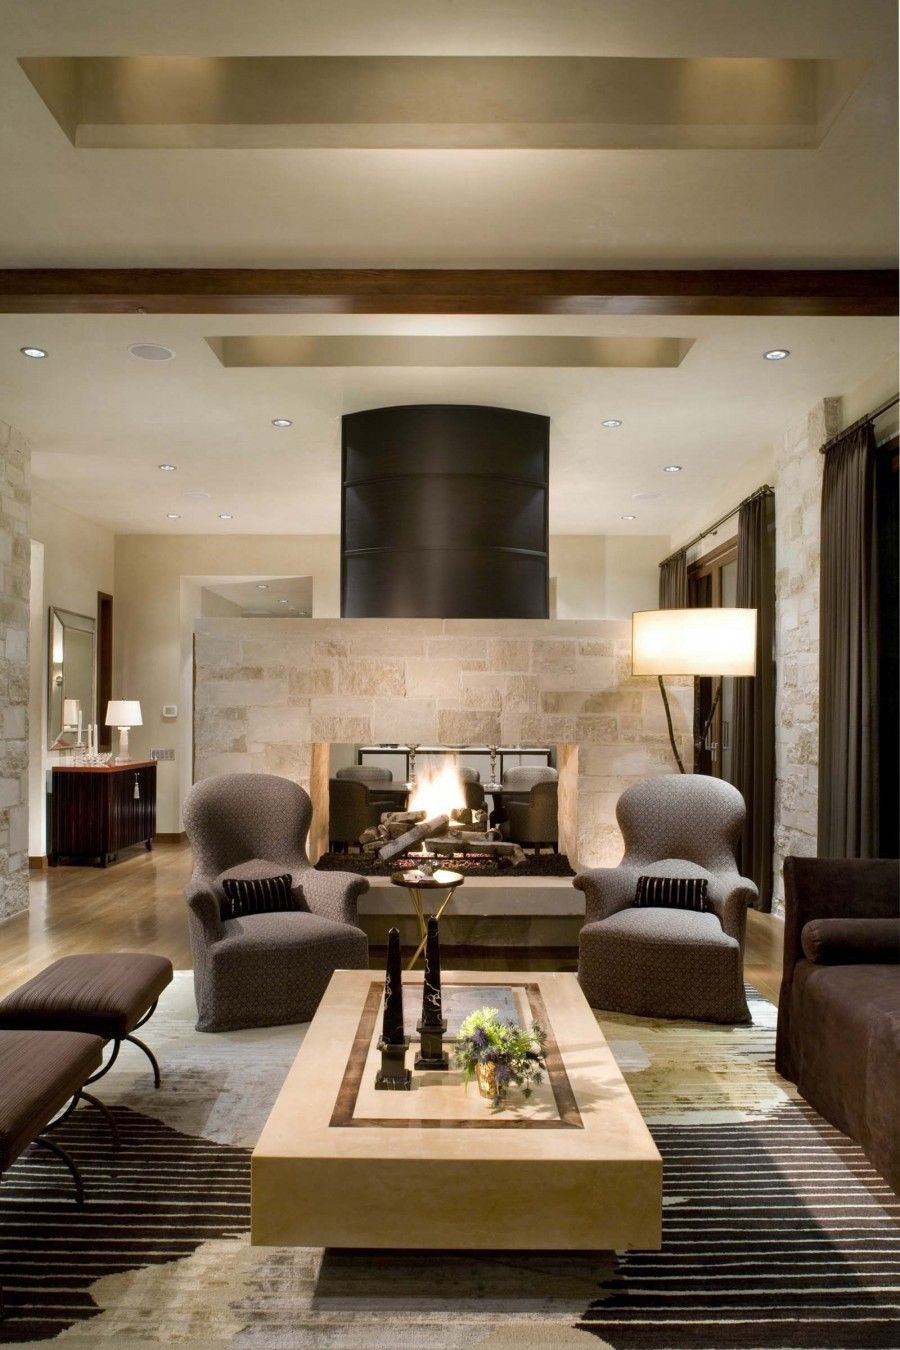 Living Room Decor with Fireplace Lovely 16 Fabulous Earth tones Living Room Designs Decoholic